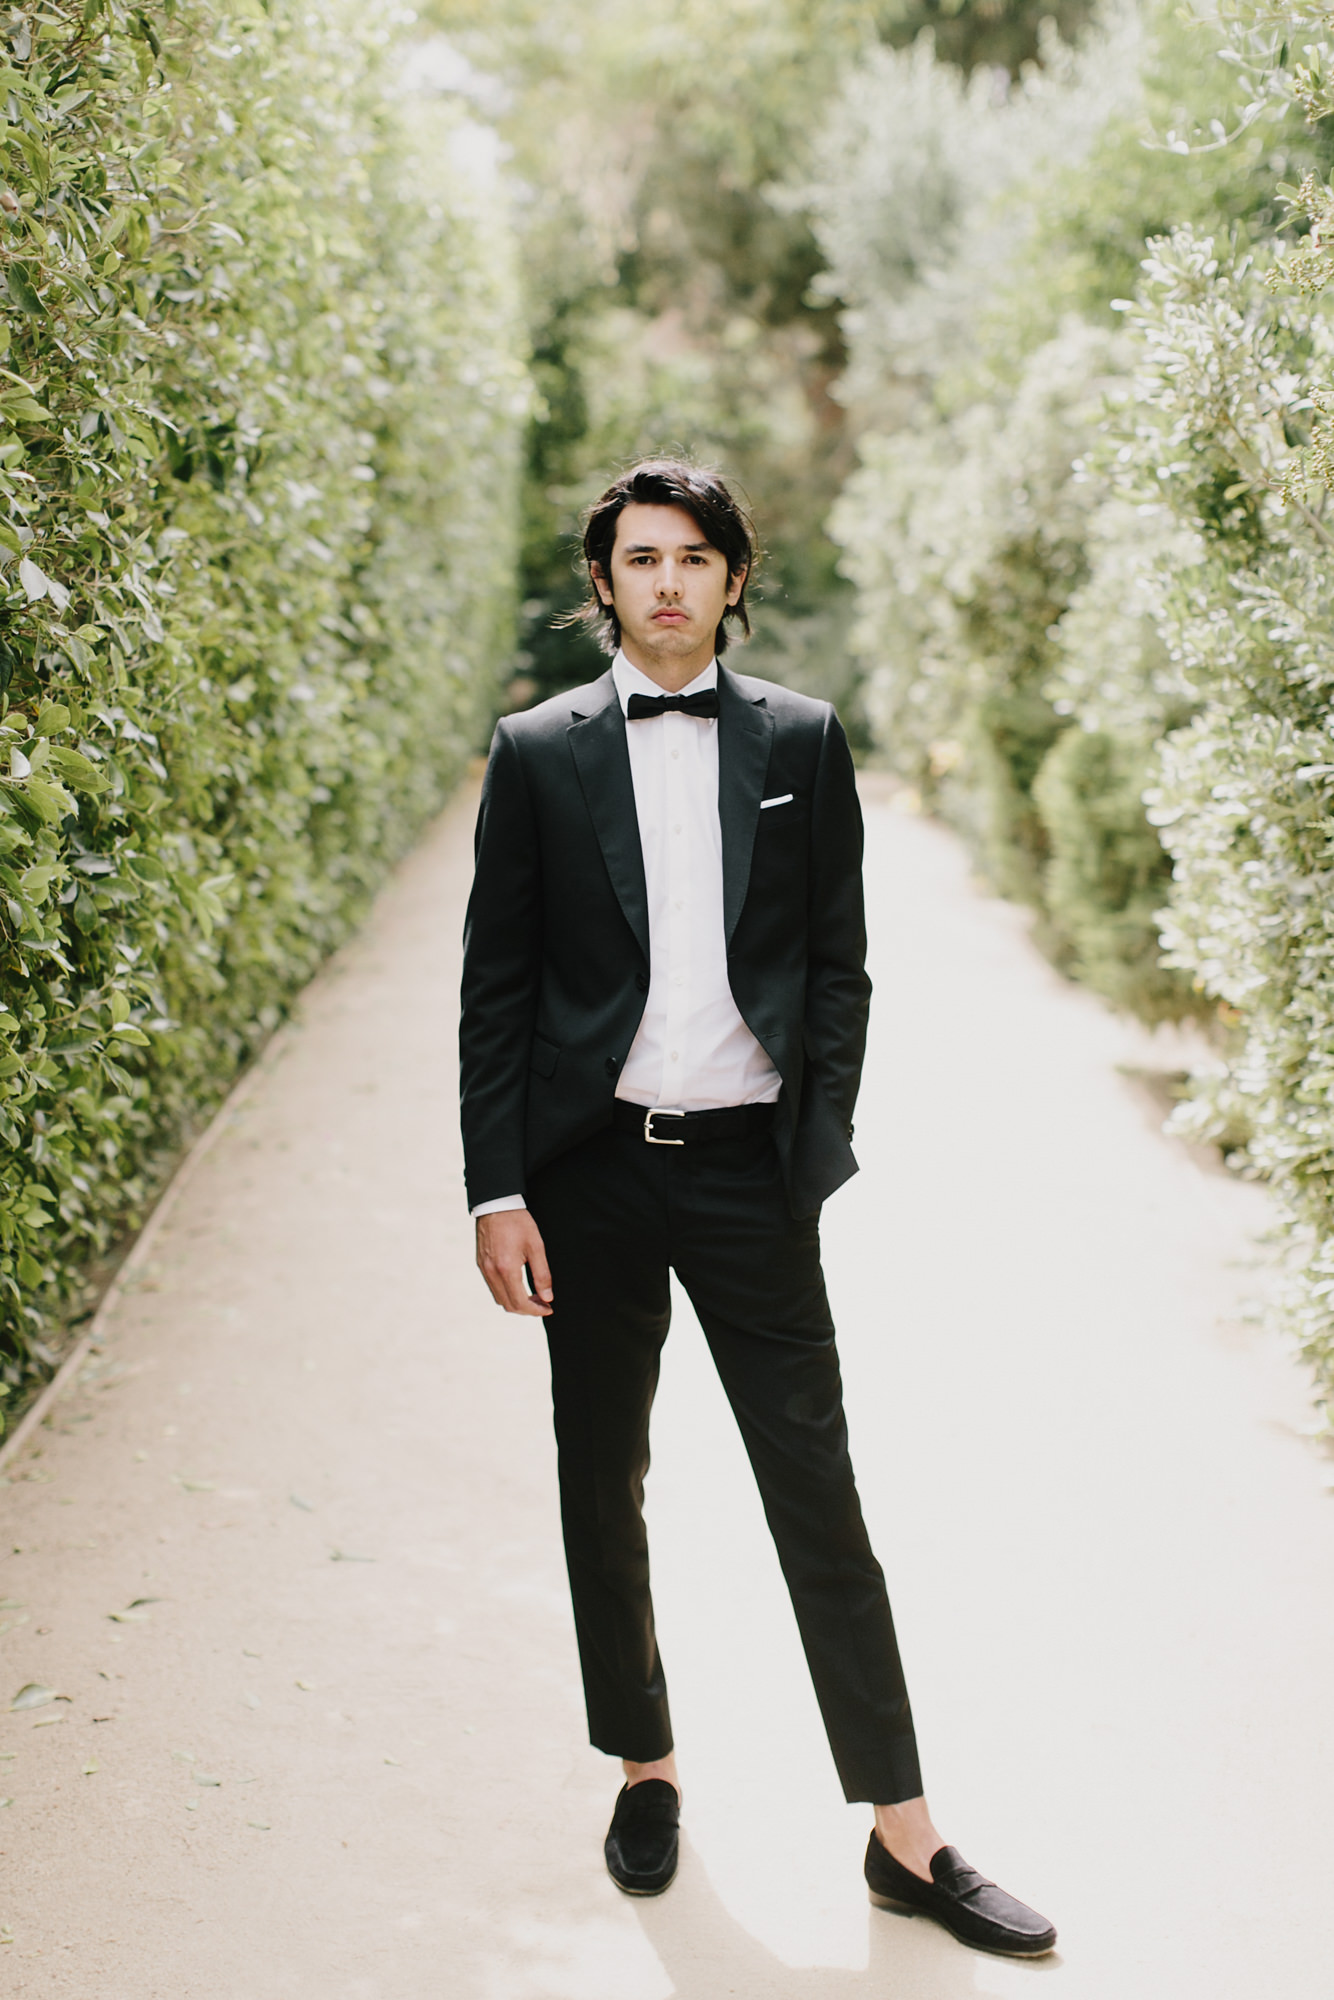 Portrait of groom in black suit, bow tie and capri pants by James Moes